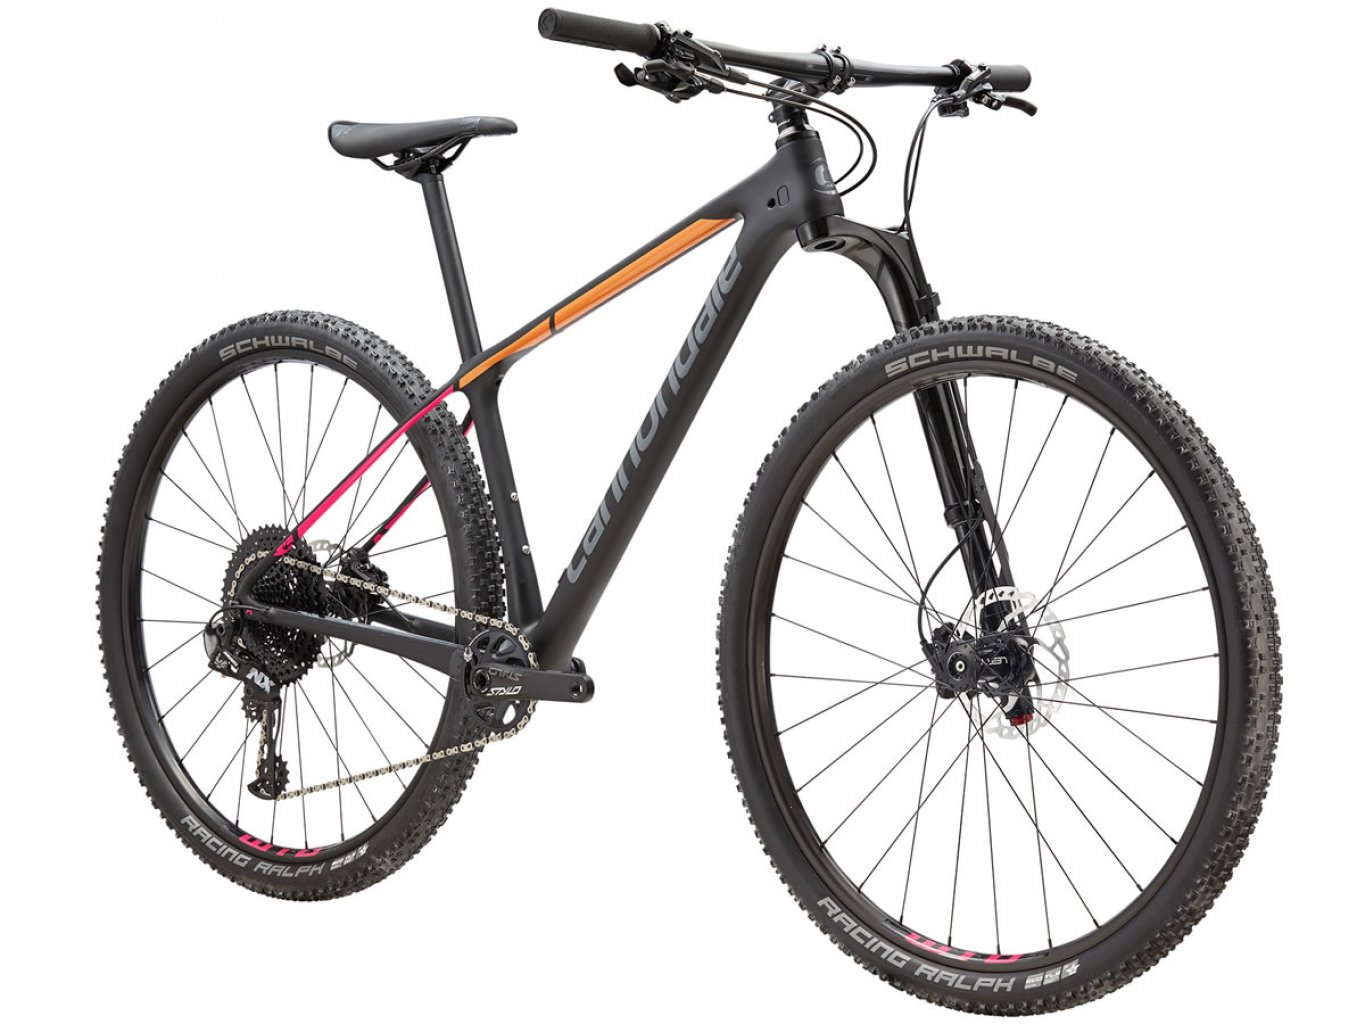 VTT CANNONDALE femme F-Si 29 Crb 2 BBQ MD 2019